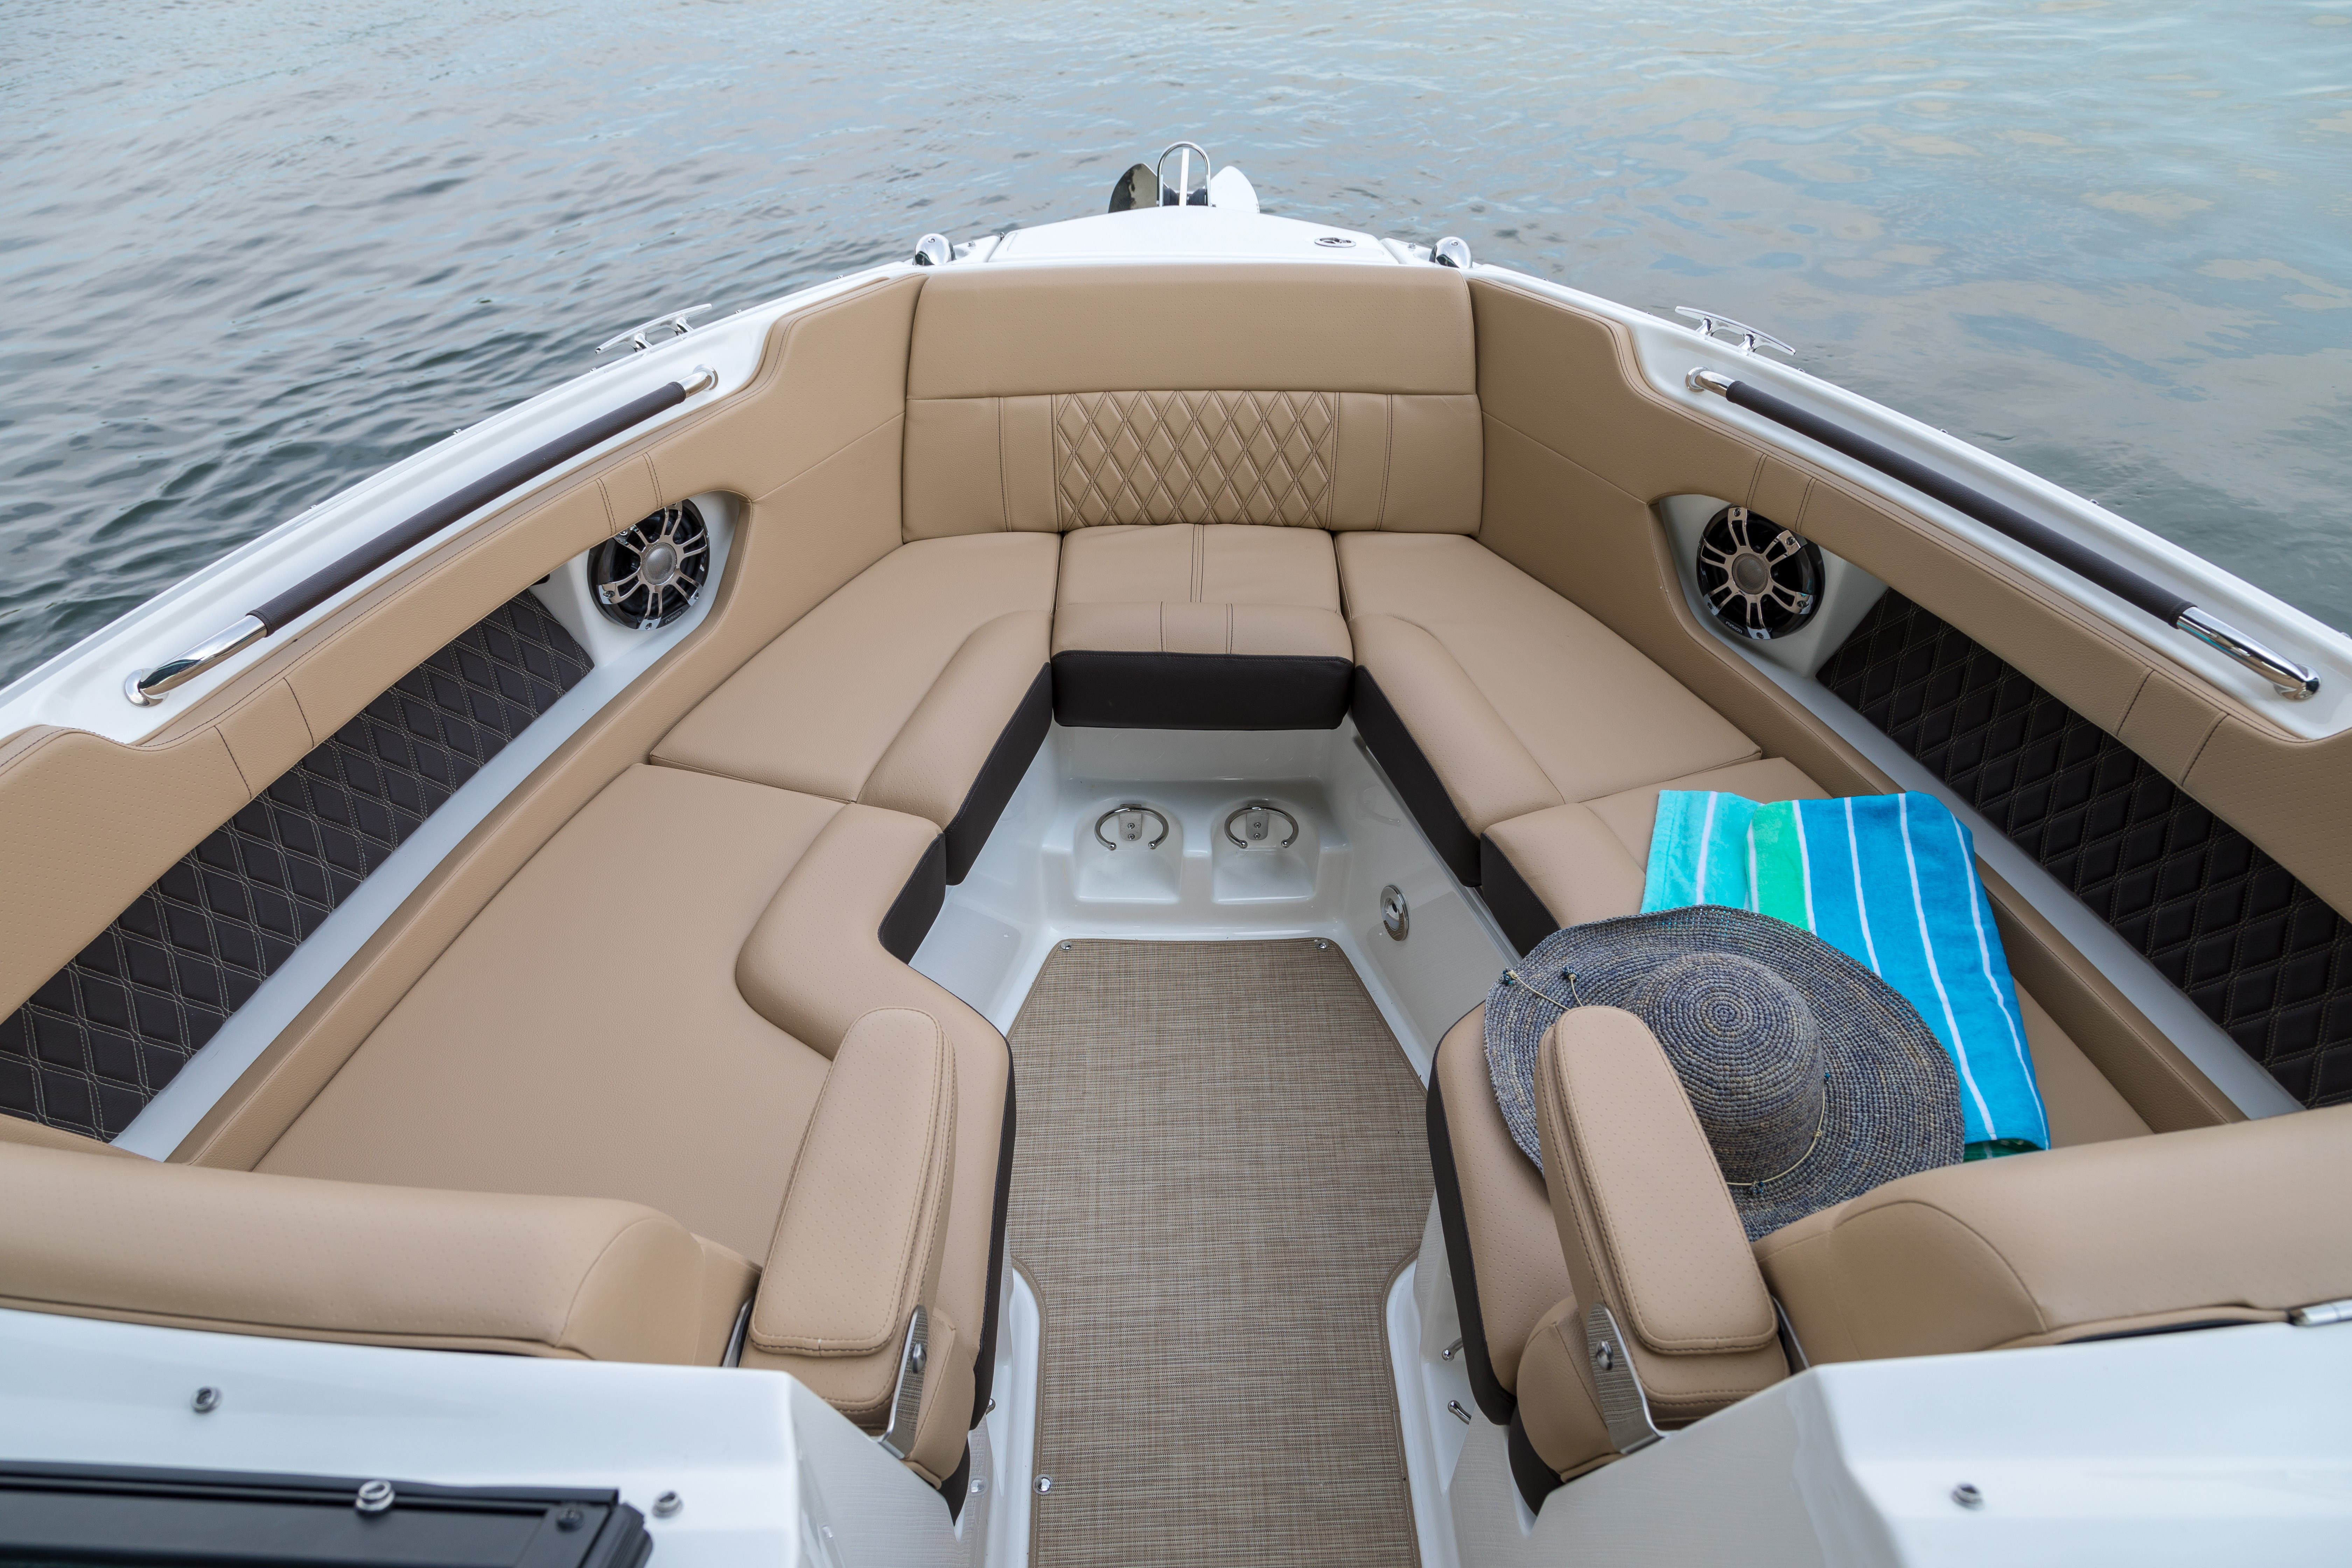 2021 Sea Ray boat for sale, model of the boat is 250slx & Image # 3 of 11